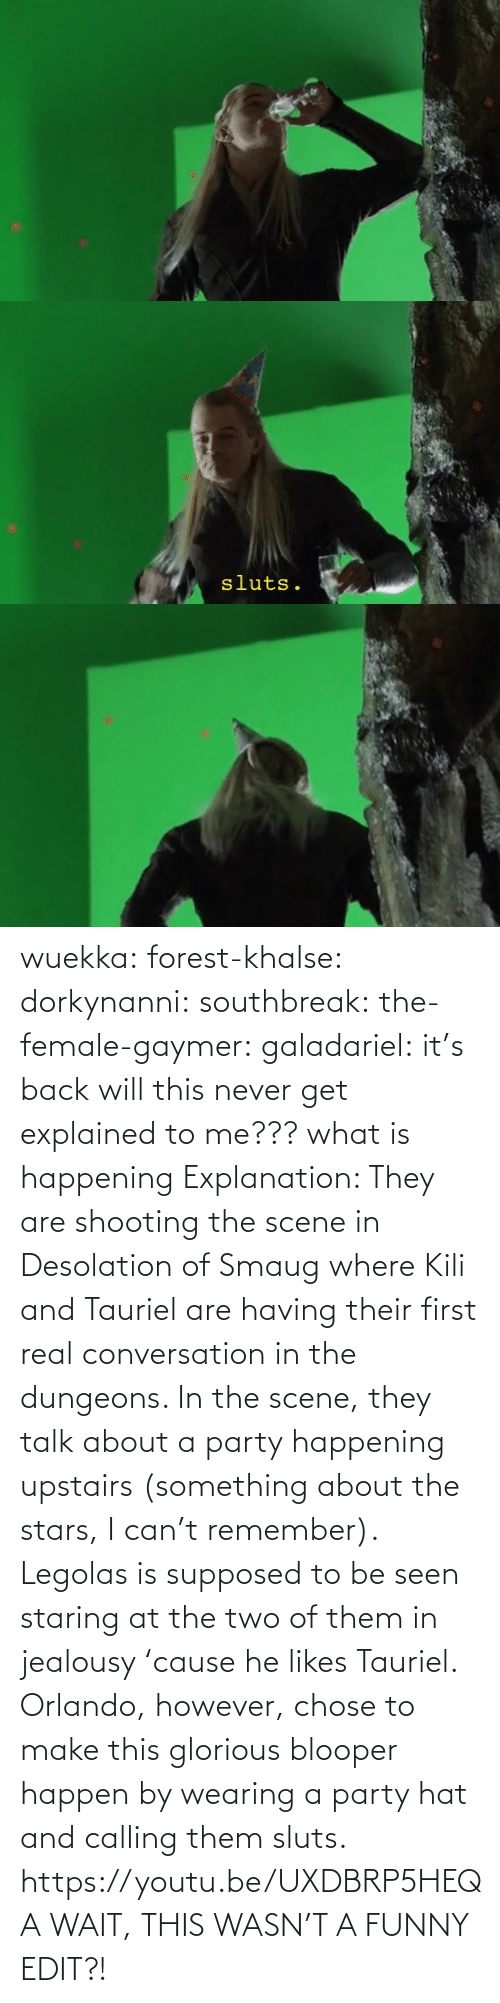 Stars: wuekka: forest-khalse:   dorkynanni:  southbreak:   the-female-gaymer:   galadariel:  it's back   will this never get explained to me???    what is happening    Explanation:  They are shooting the scene in Desolation of Smaug where Kili and Tauriel are having their first real conversation in the dungeons.  In the scene, they talk about a party happening upstairs (something about the stars, I can't remember). Legolas is supposed to be seen staring at the two of them in jealousy 'cause he likes Tauriel.  Orlando, however, chose to make this glorious blooper happen by wearing a party hat and calling them sluts.    https://youtu.be/UXDBRP5HEQA    WAIT, THIS WASN'T A FUNNY EDIT?!